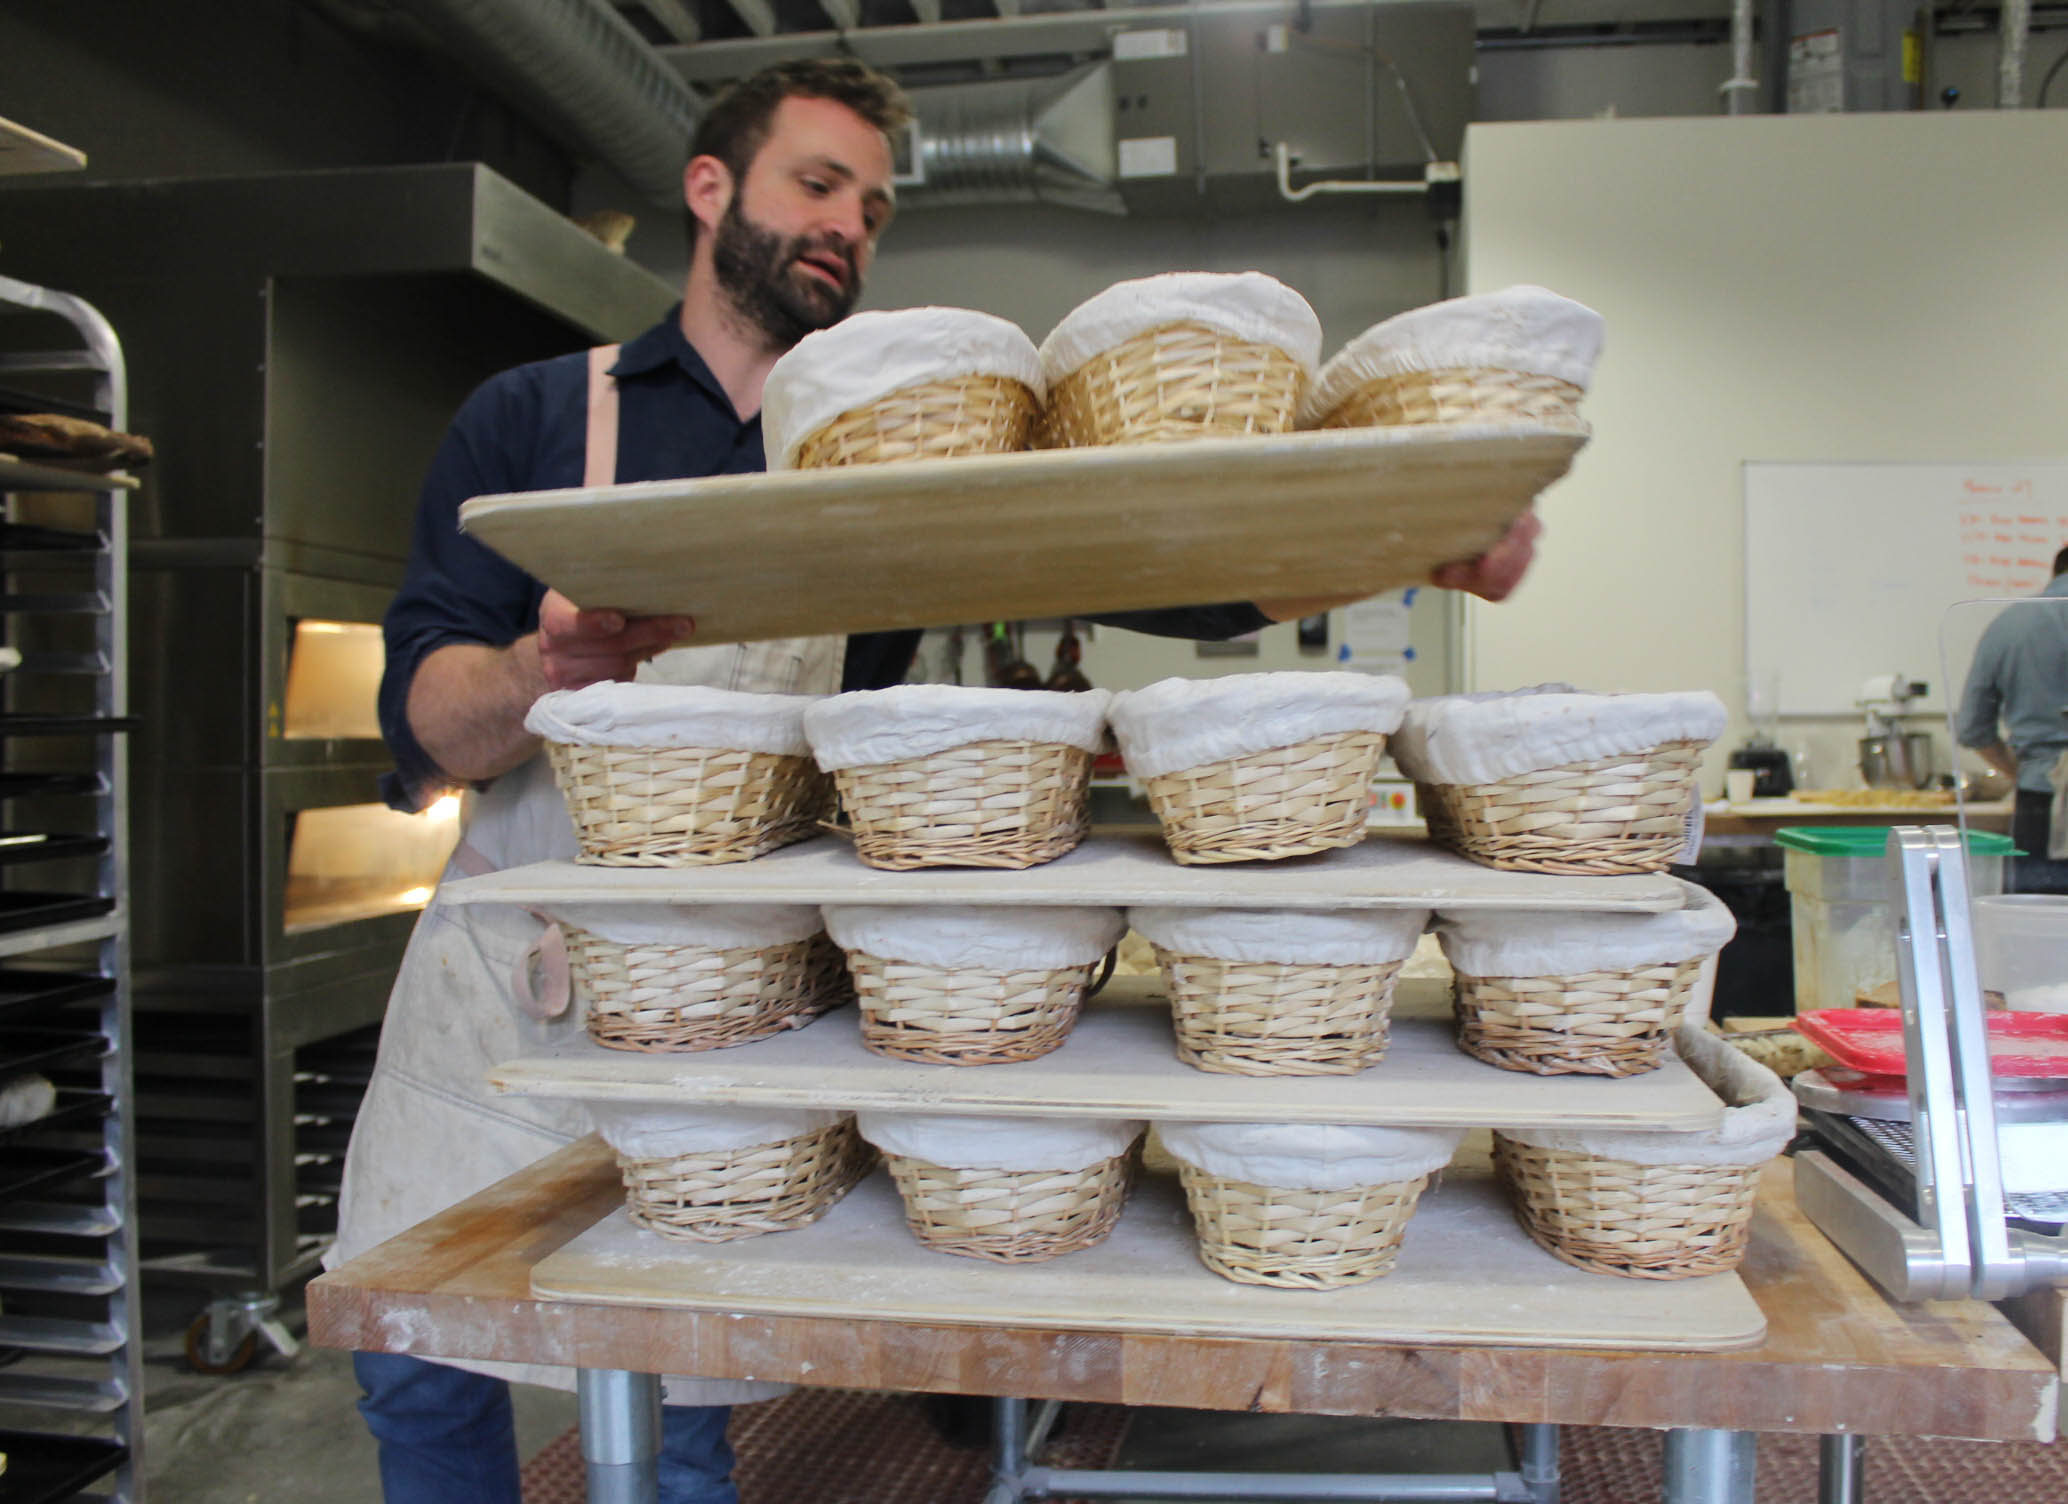 Getting proofing baskets ready.